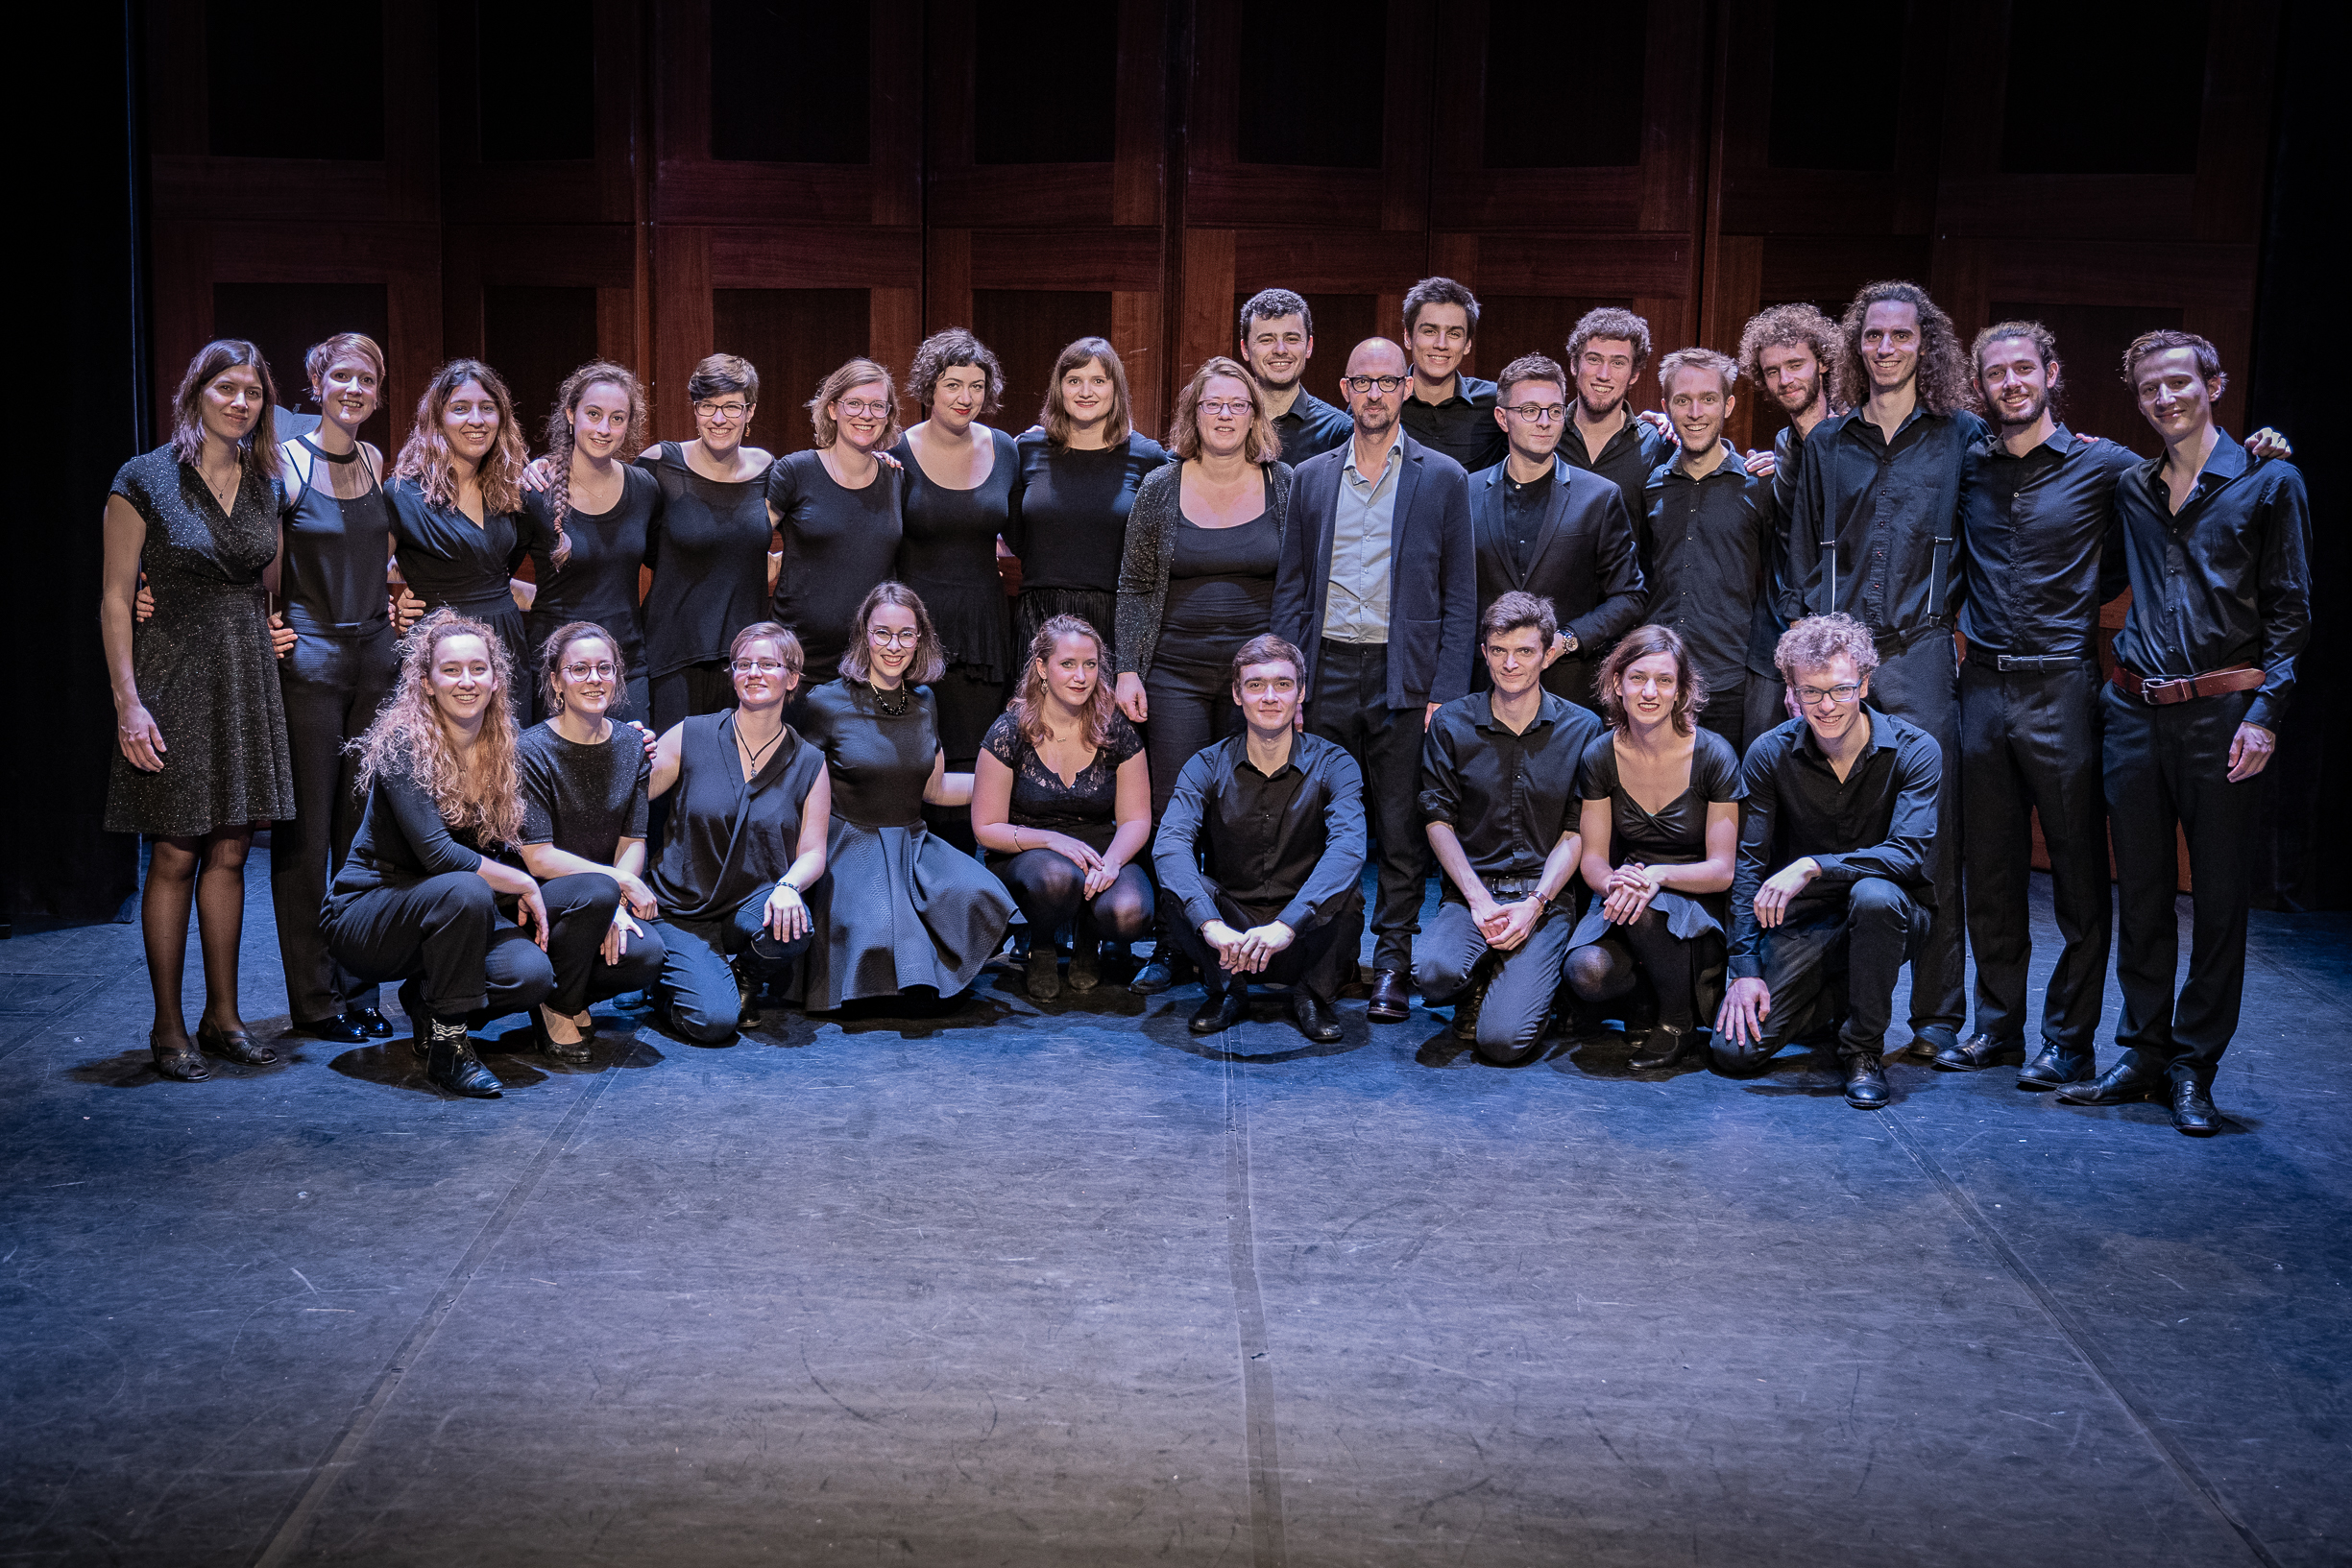 Chant d'ensemble – Le Printemps musical de Silly BeVocaL